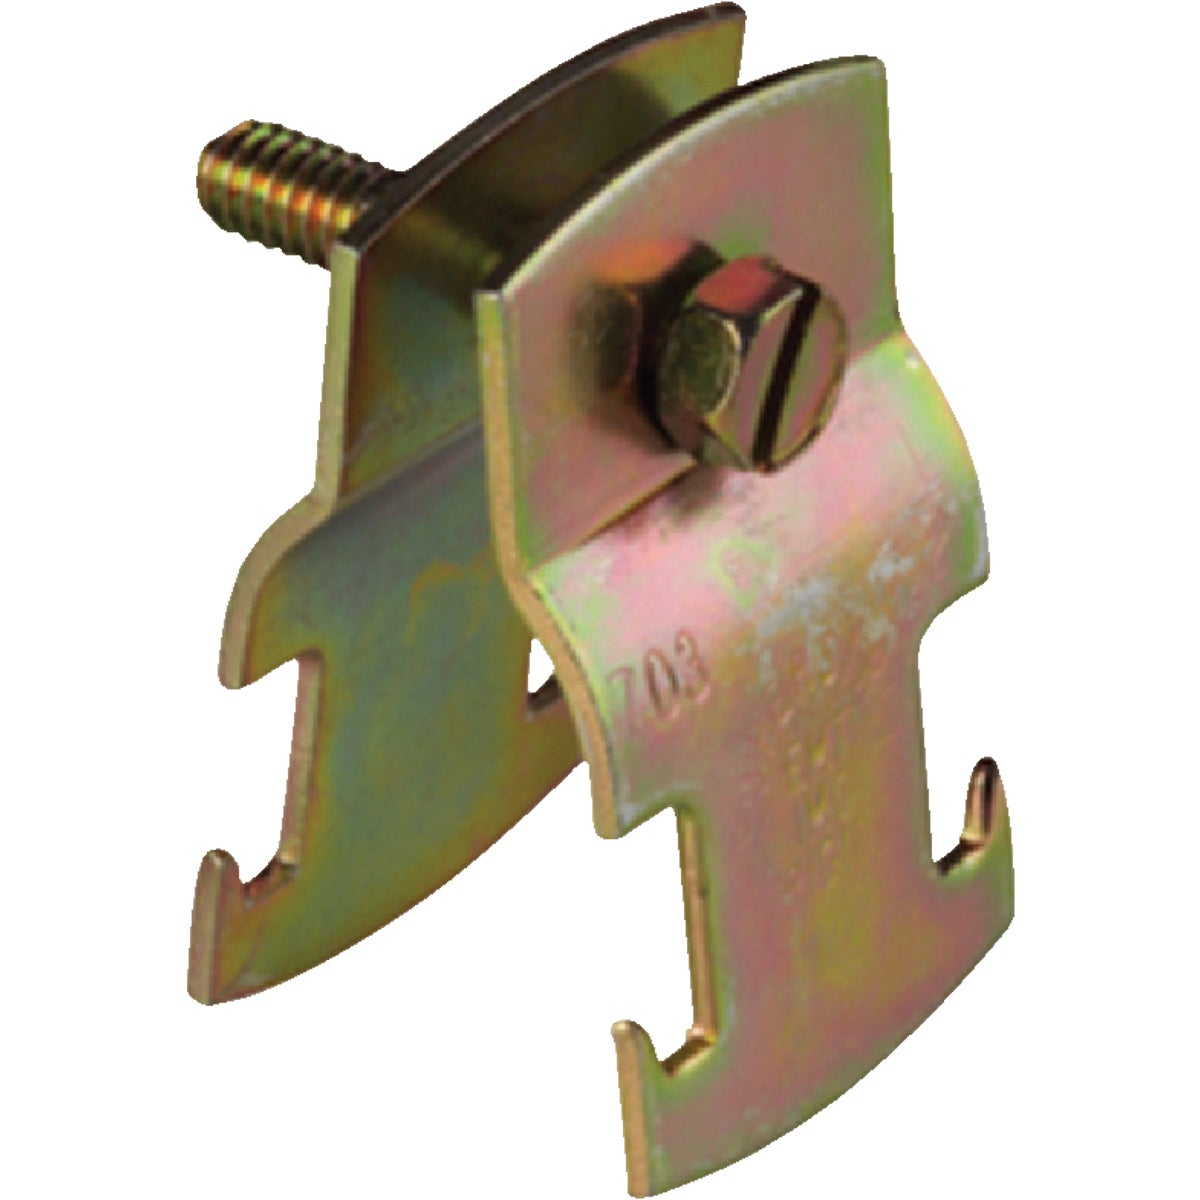 "1-1/2"" PIPE CLAMP - Z703-11/2-10 by Thomas & Betts"